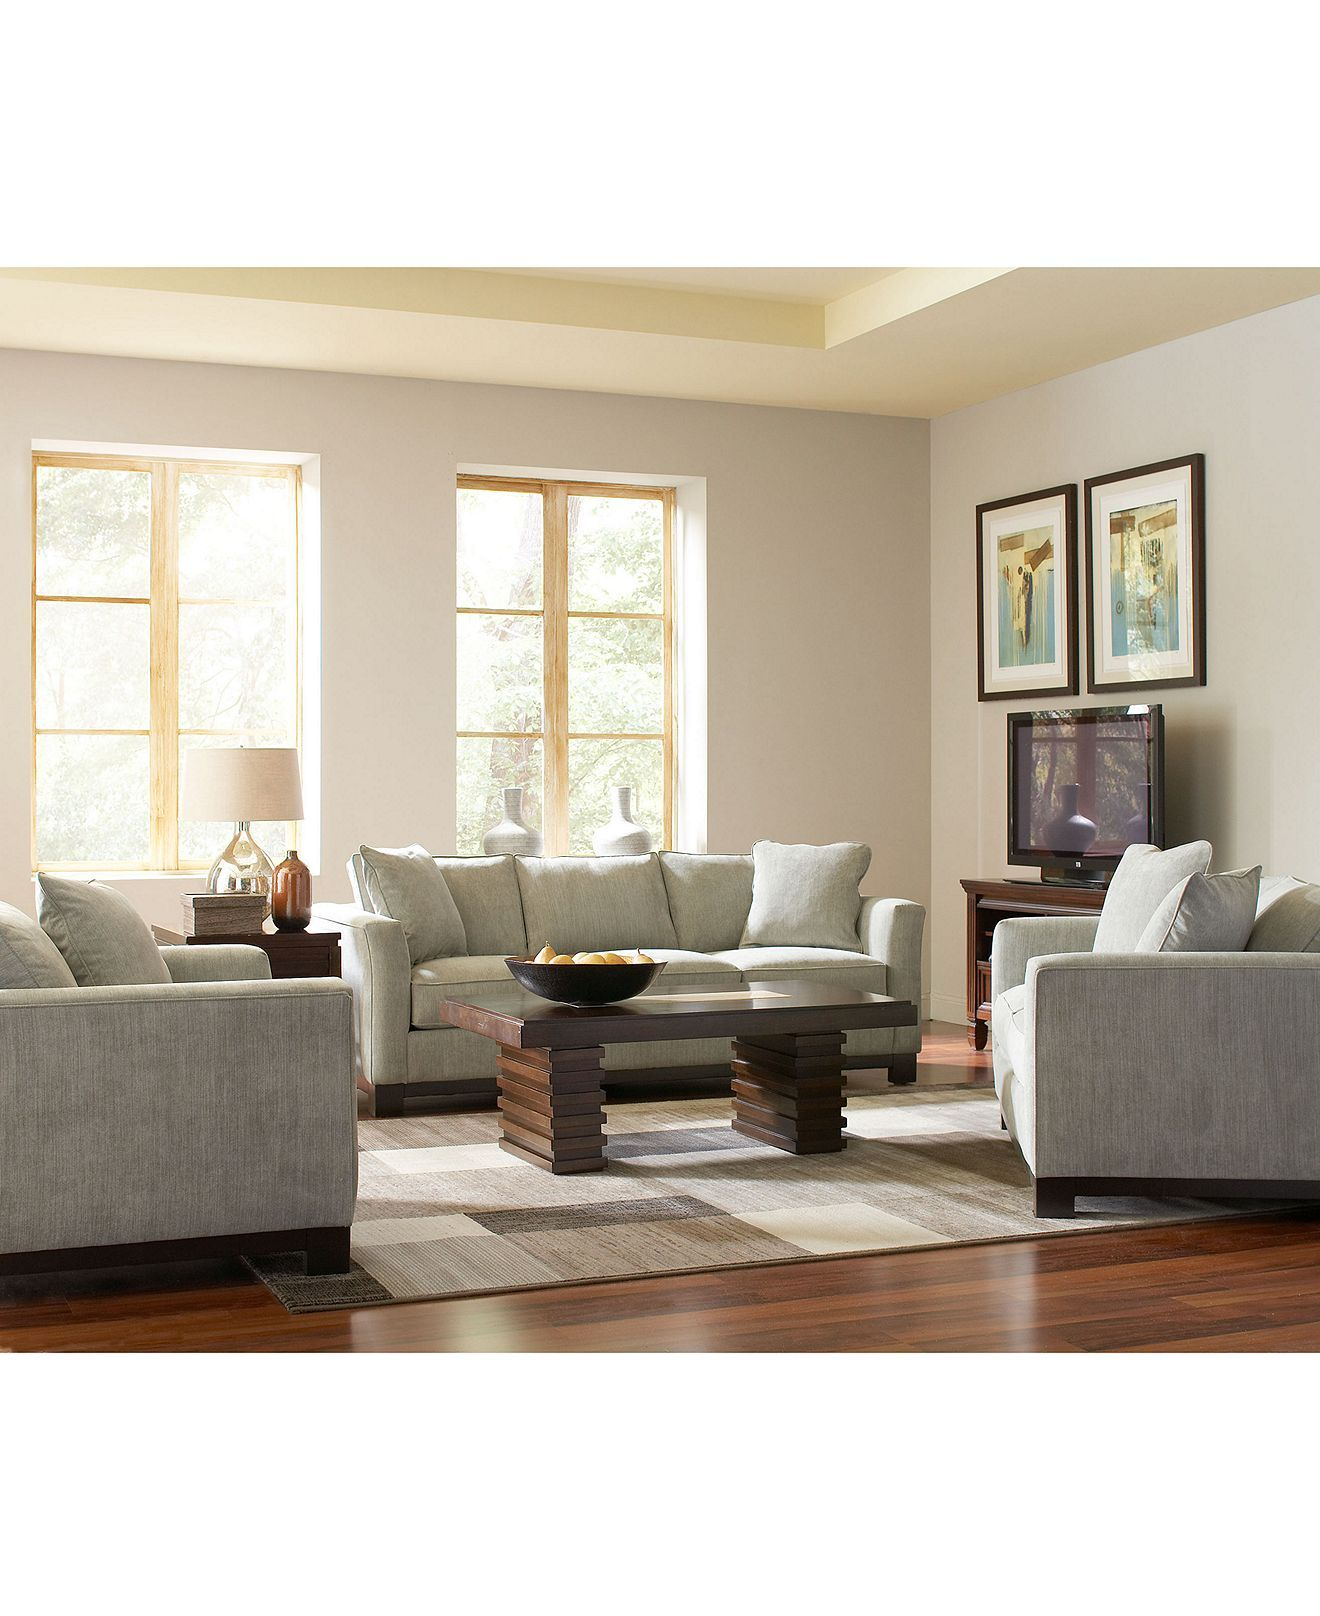 kenton fabric sofa parchment cleaning services new orleans living room furniture collection